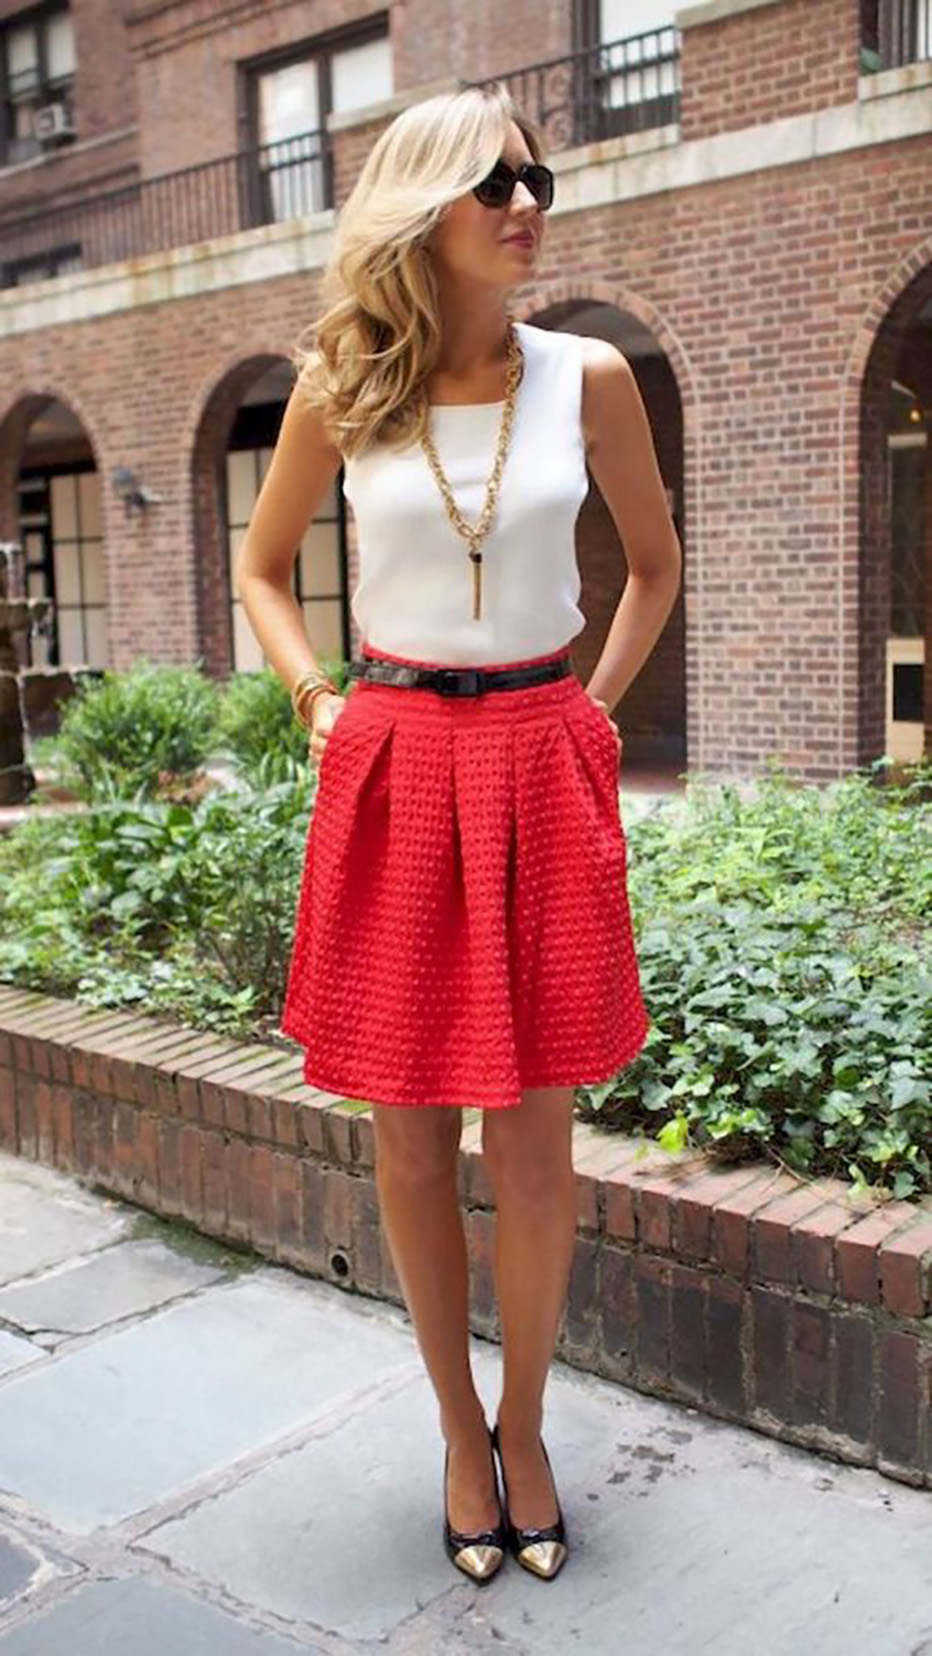 15 summer looks for the office Look 5